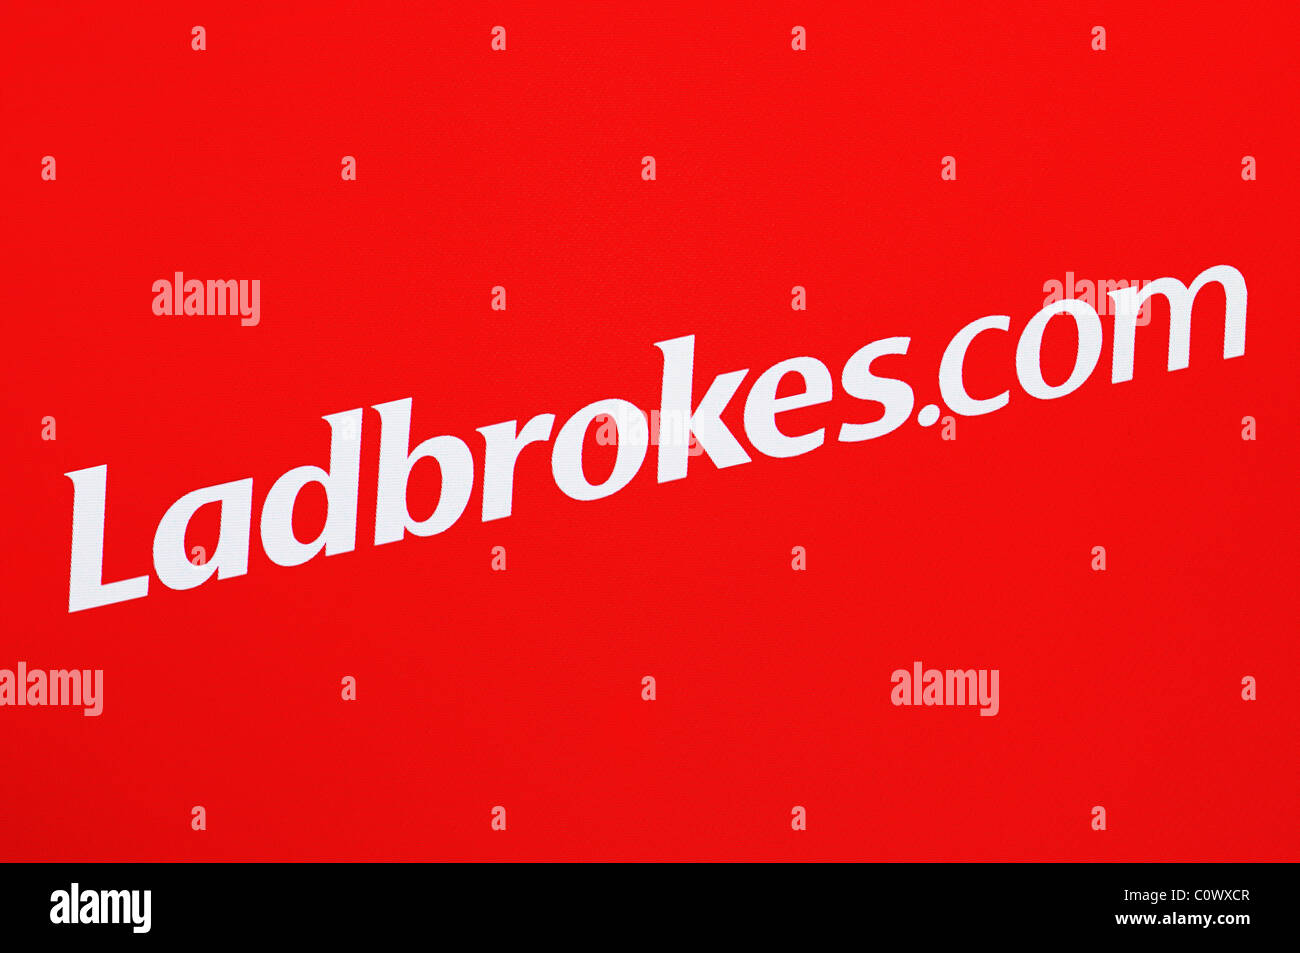 Ladbrokes Screenshot. Ladbrokes.com is the Internet Version of the Bookmaker. - Stock Image